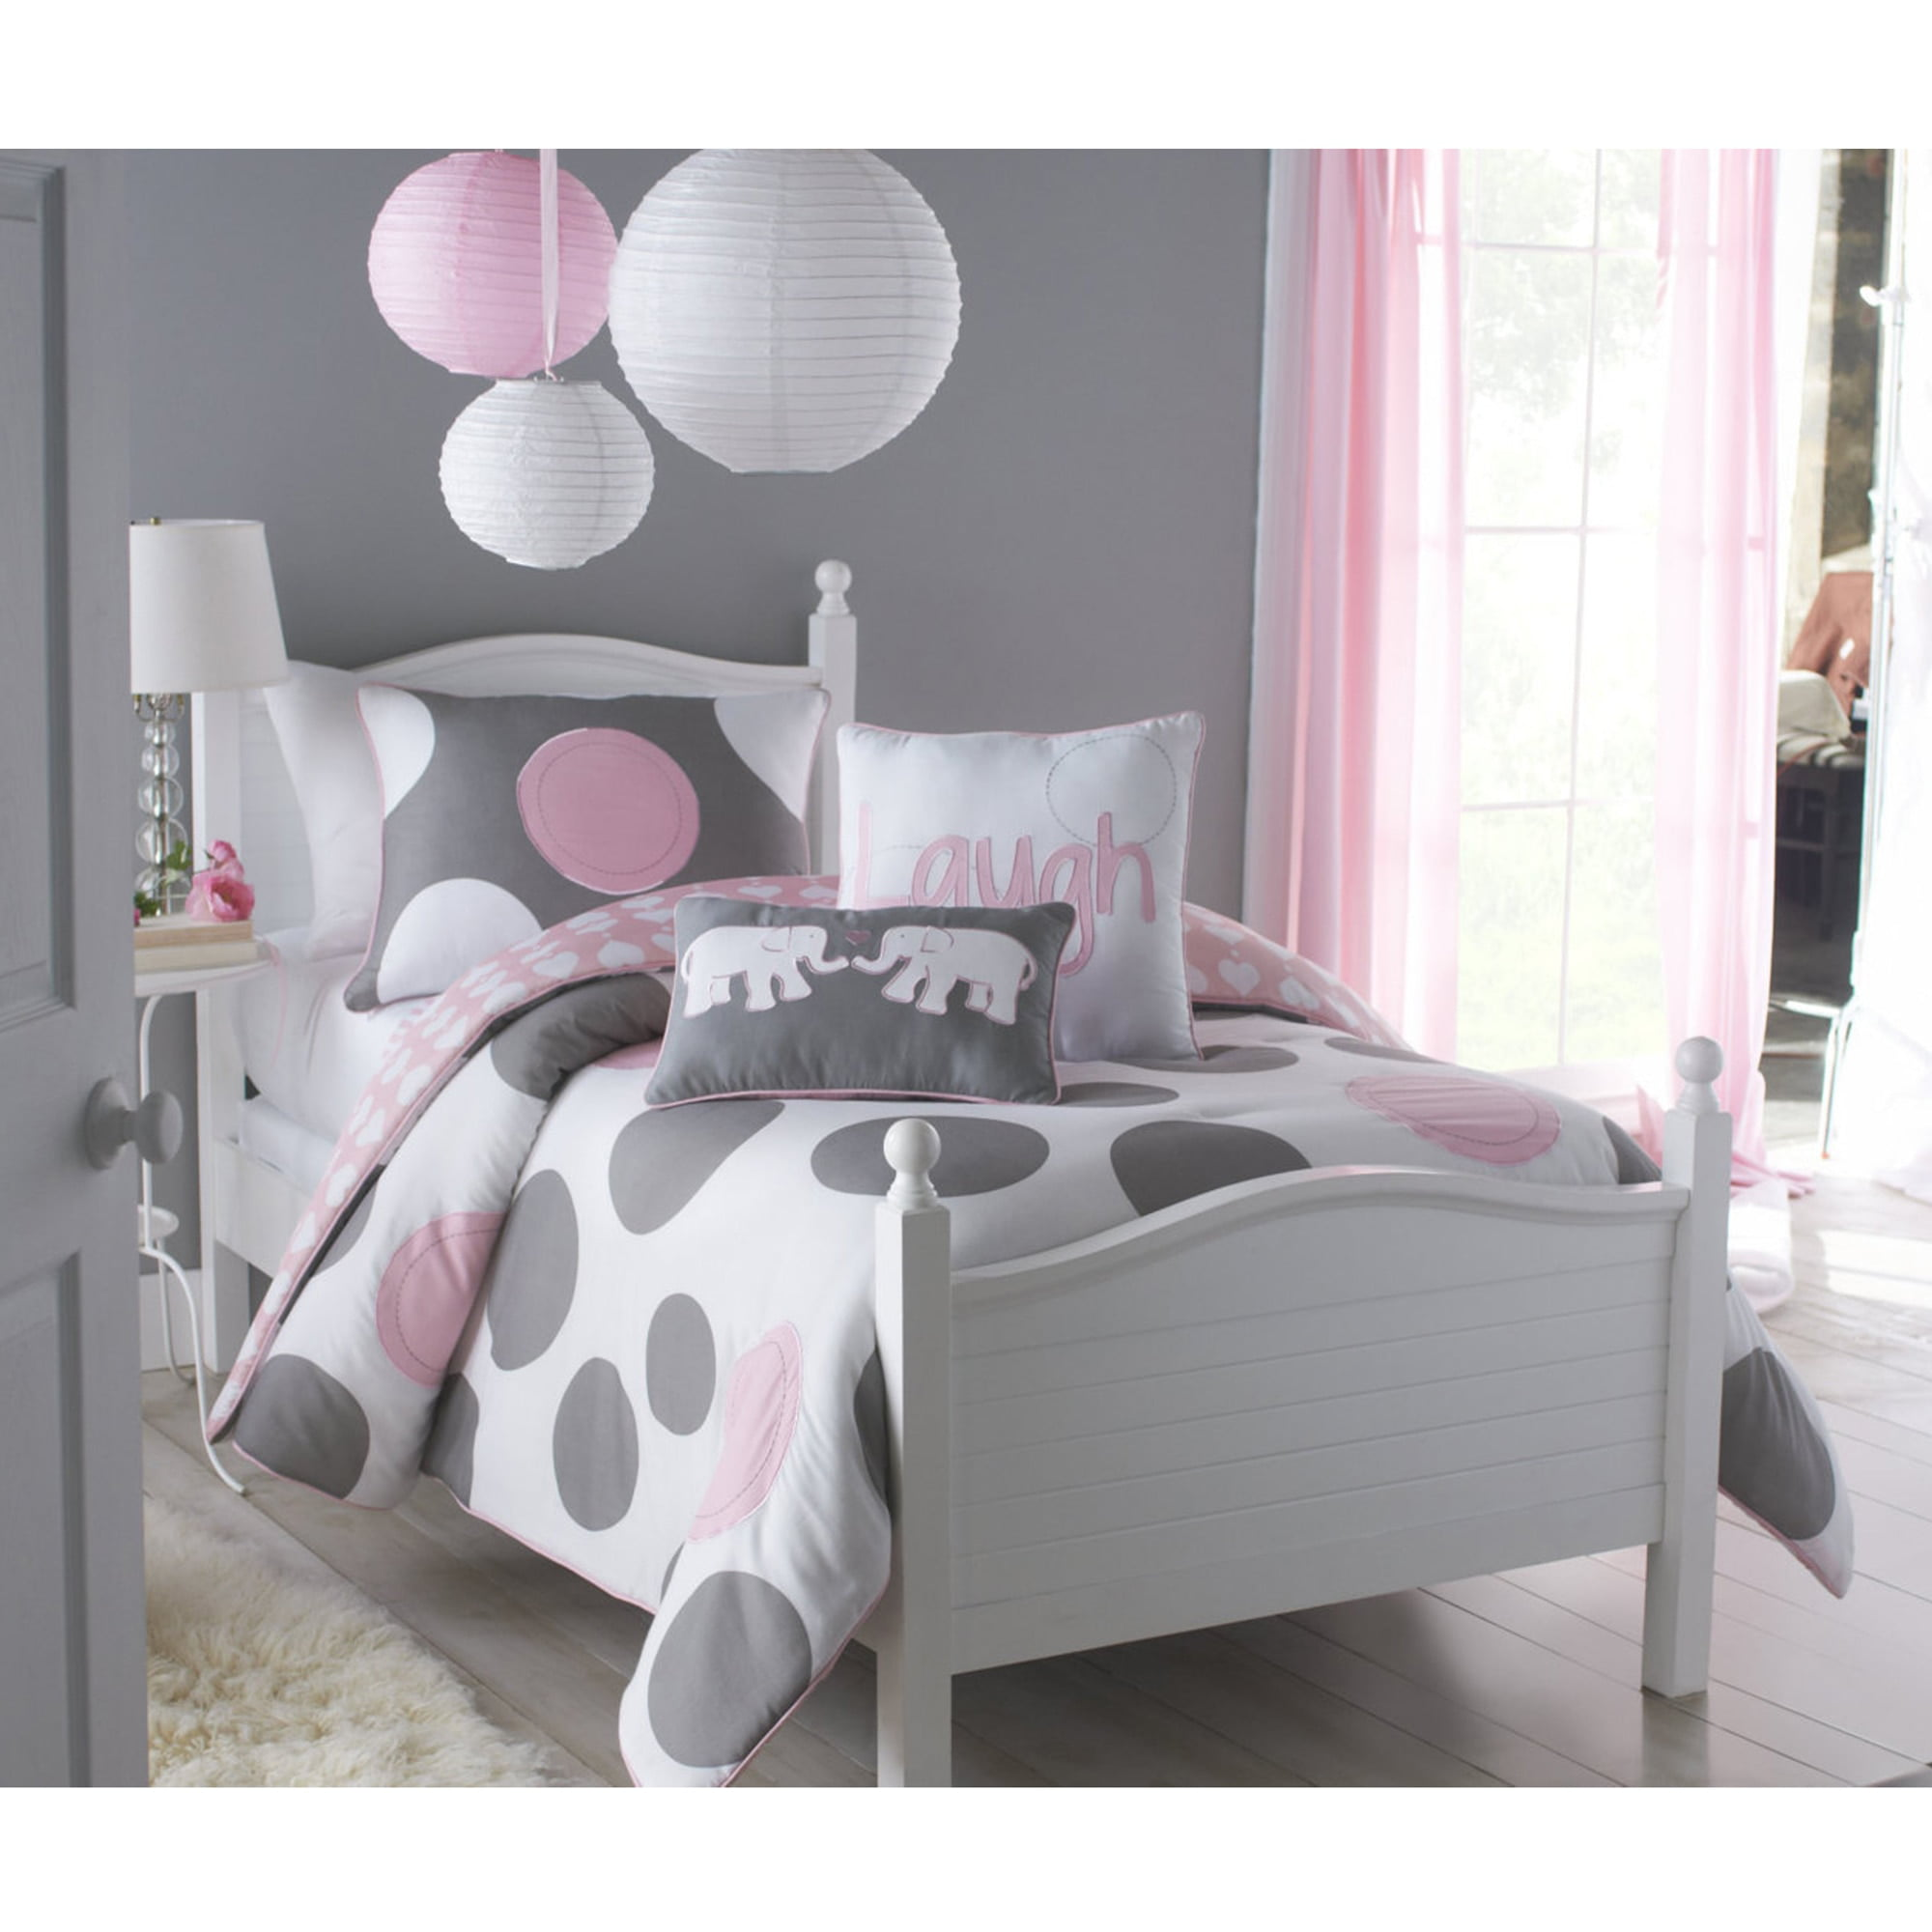 VCNY Home Pink Parade Polka Dot Reversible Kids Bedding Comforter Set    Walmart.com